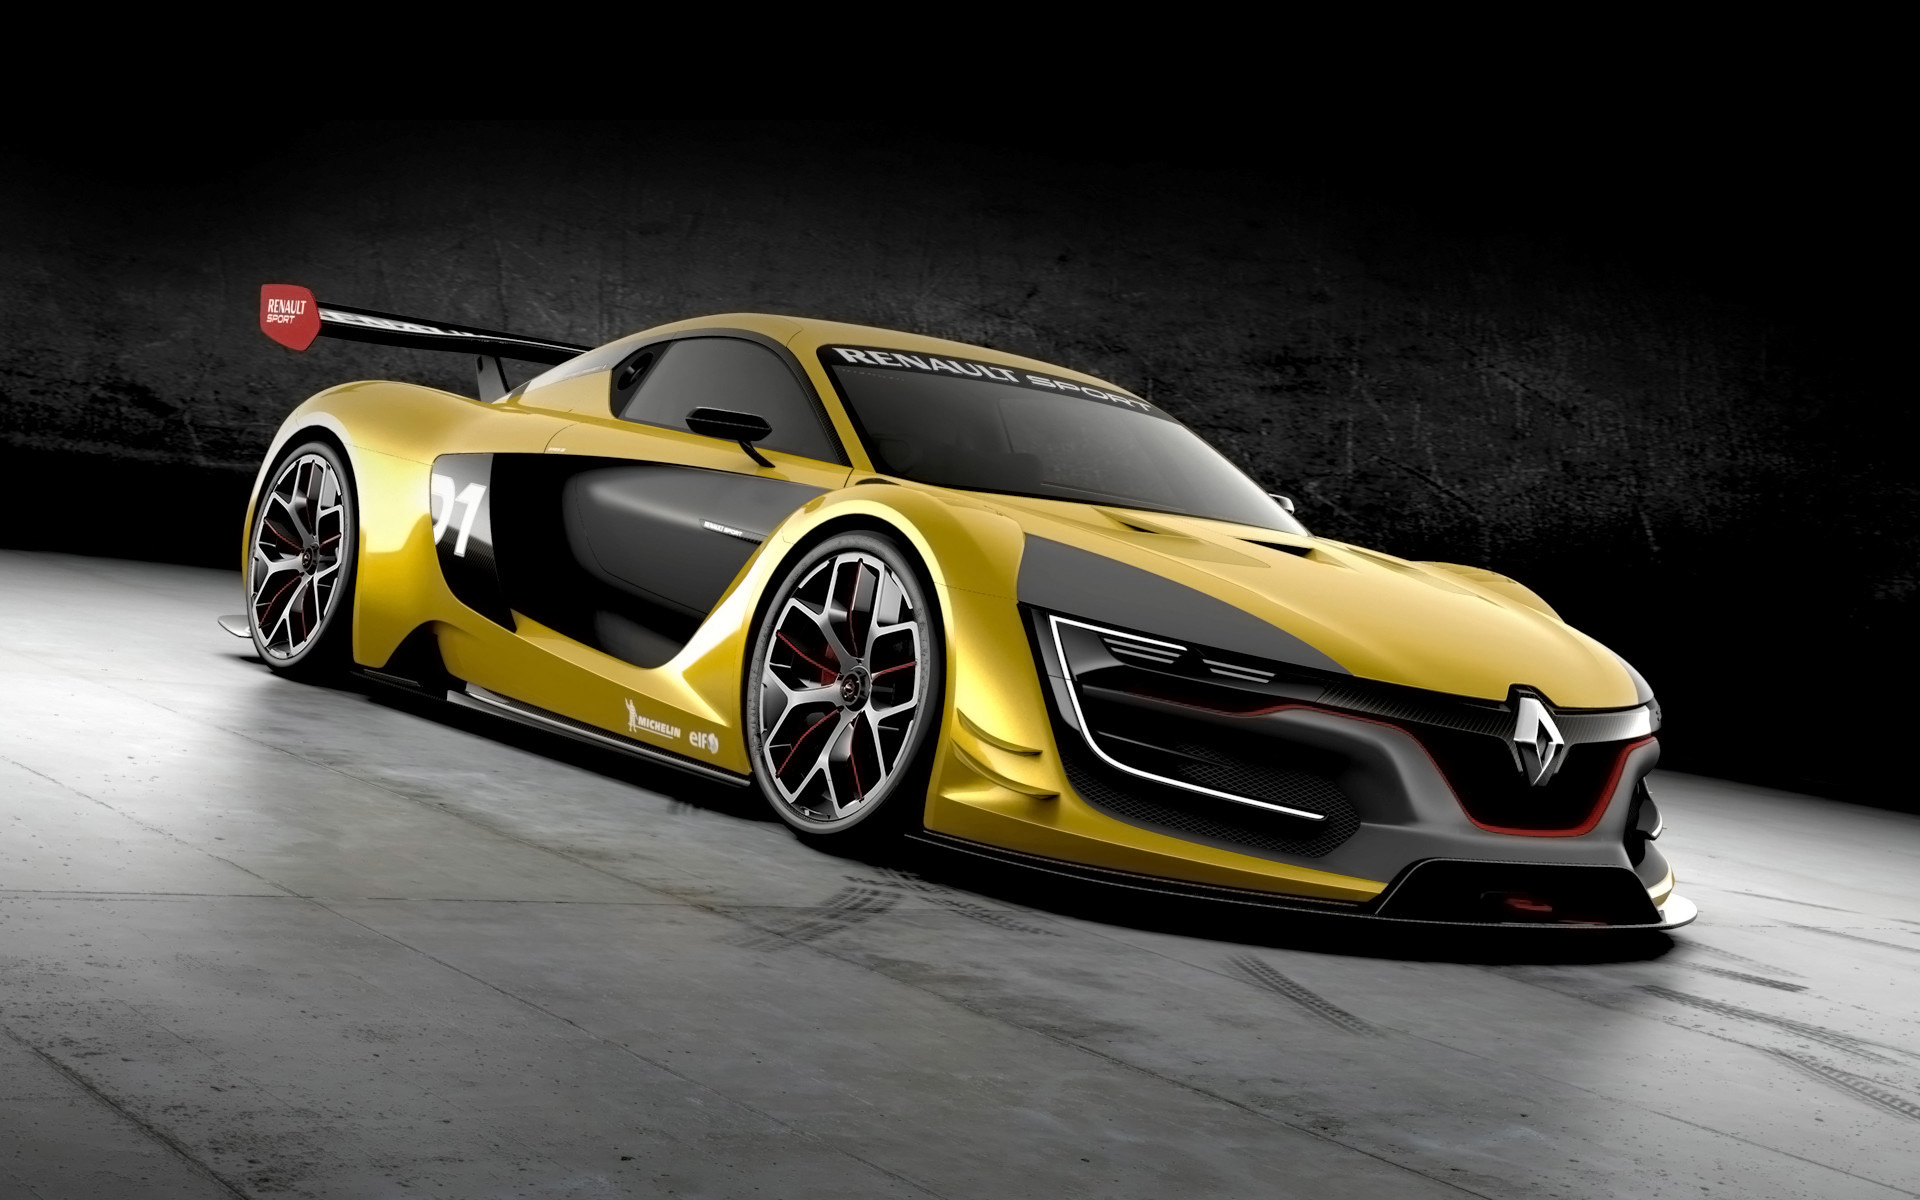 2014 renault sport rs 01 wallpaper hd car wallpapers id 4824. Black Bedroom Furniture Sets. Home Design Ideas